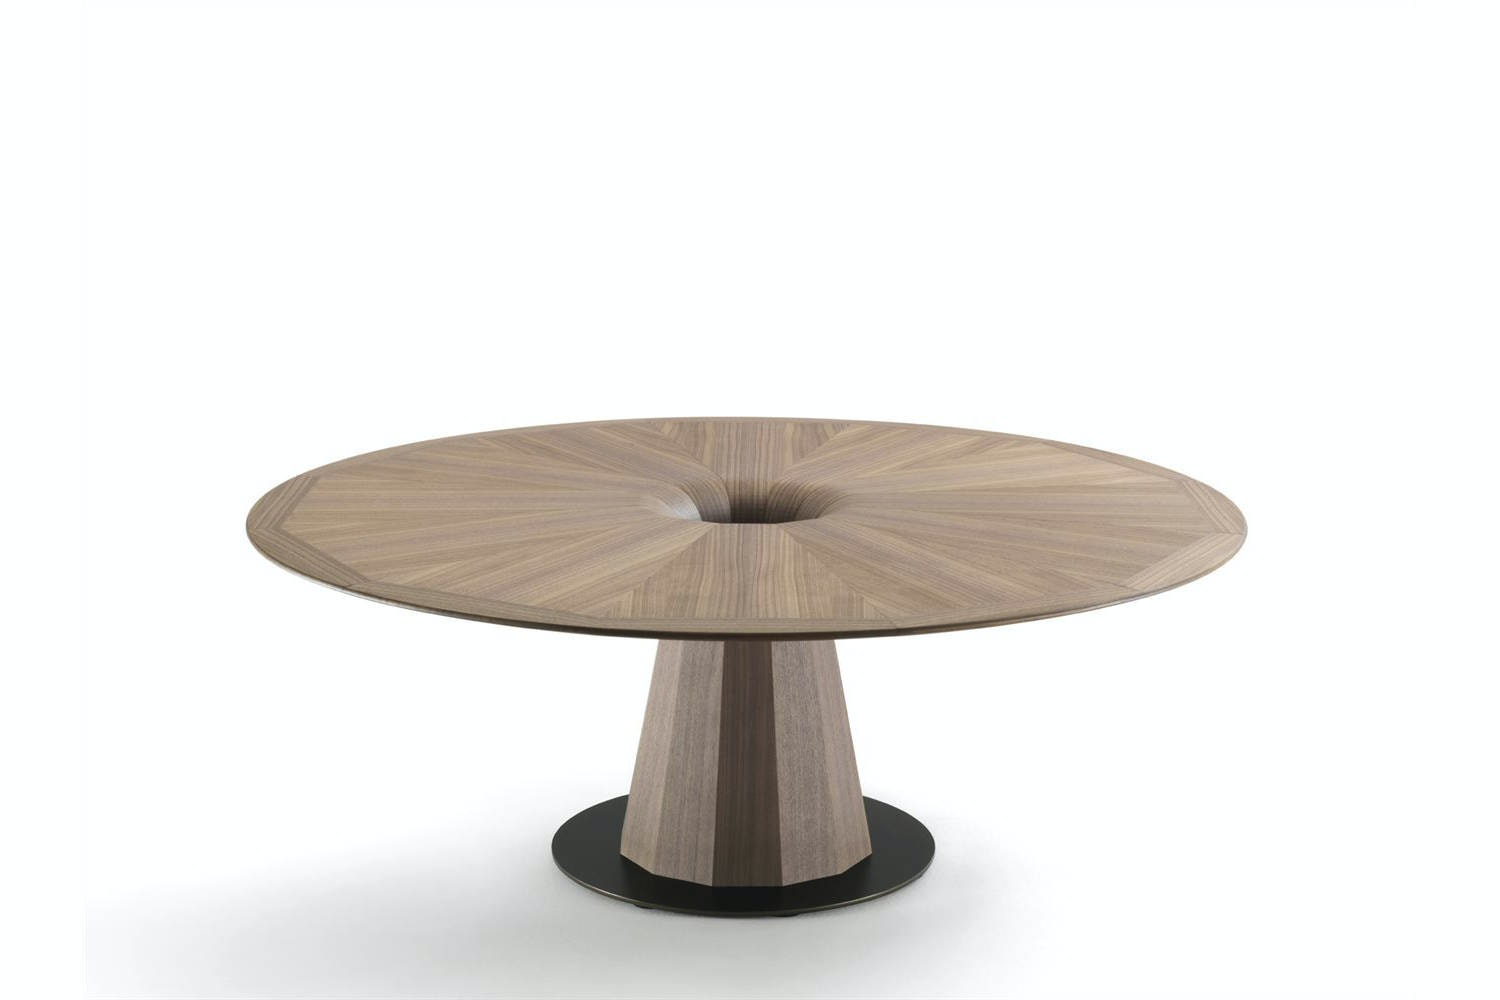 Fuji Table by T. Colzani for Porada